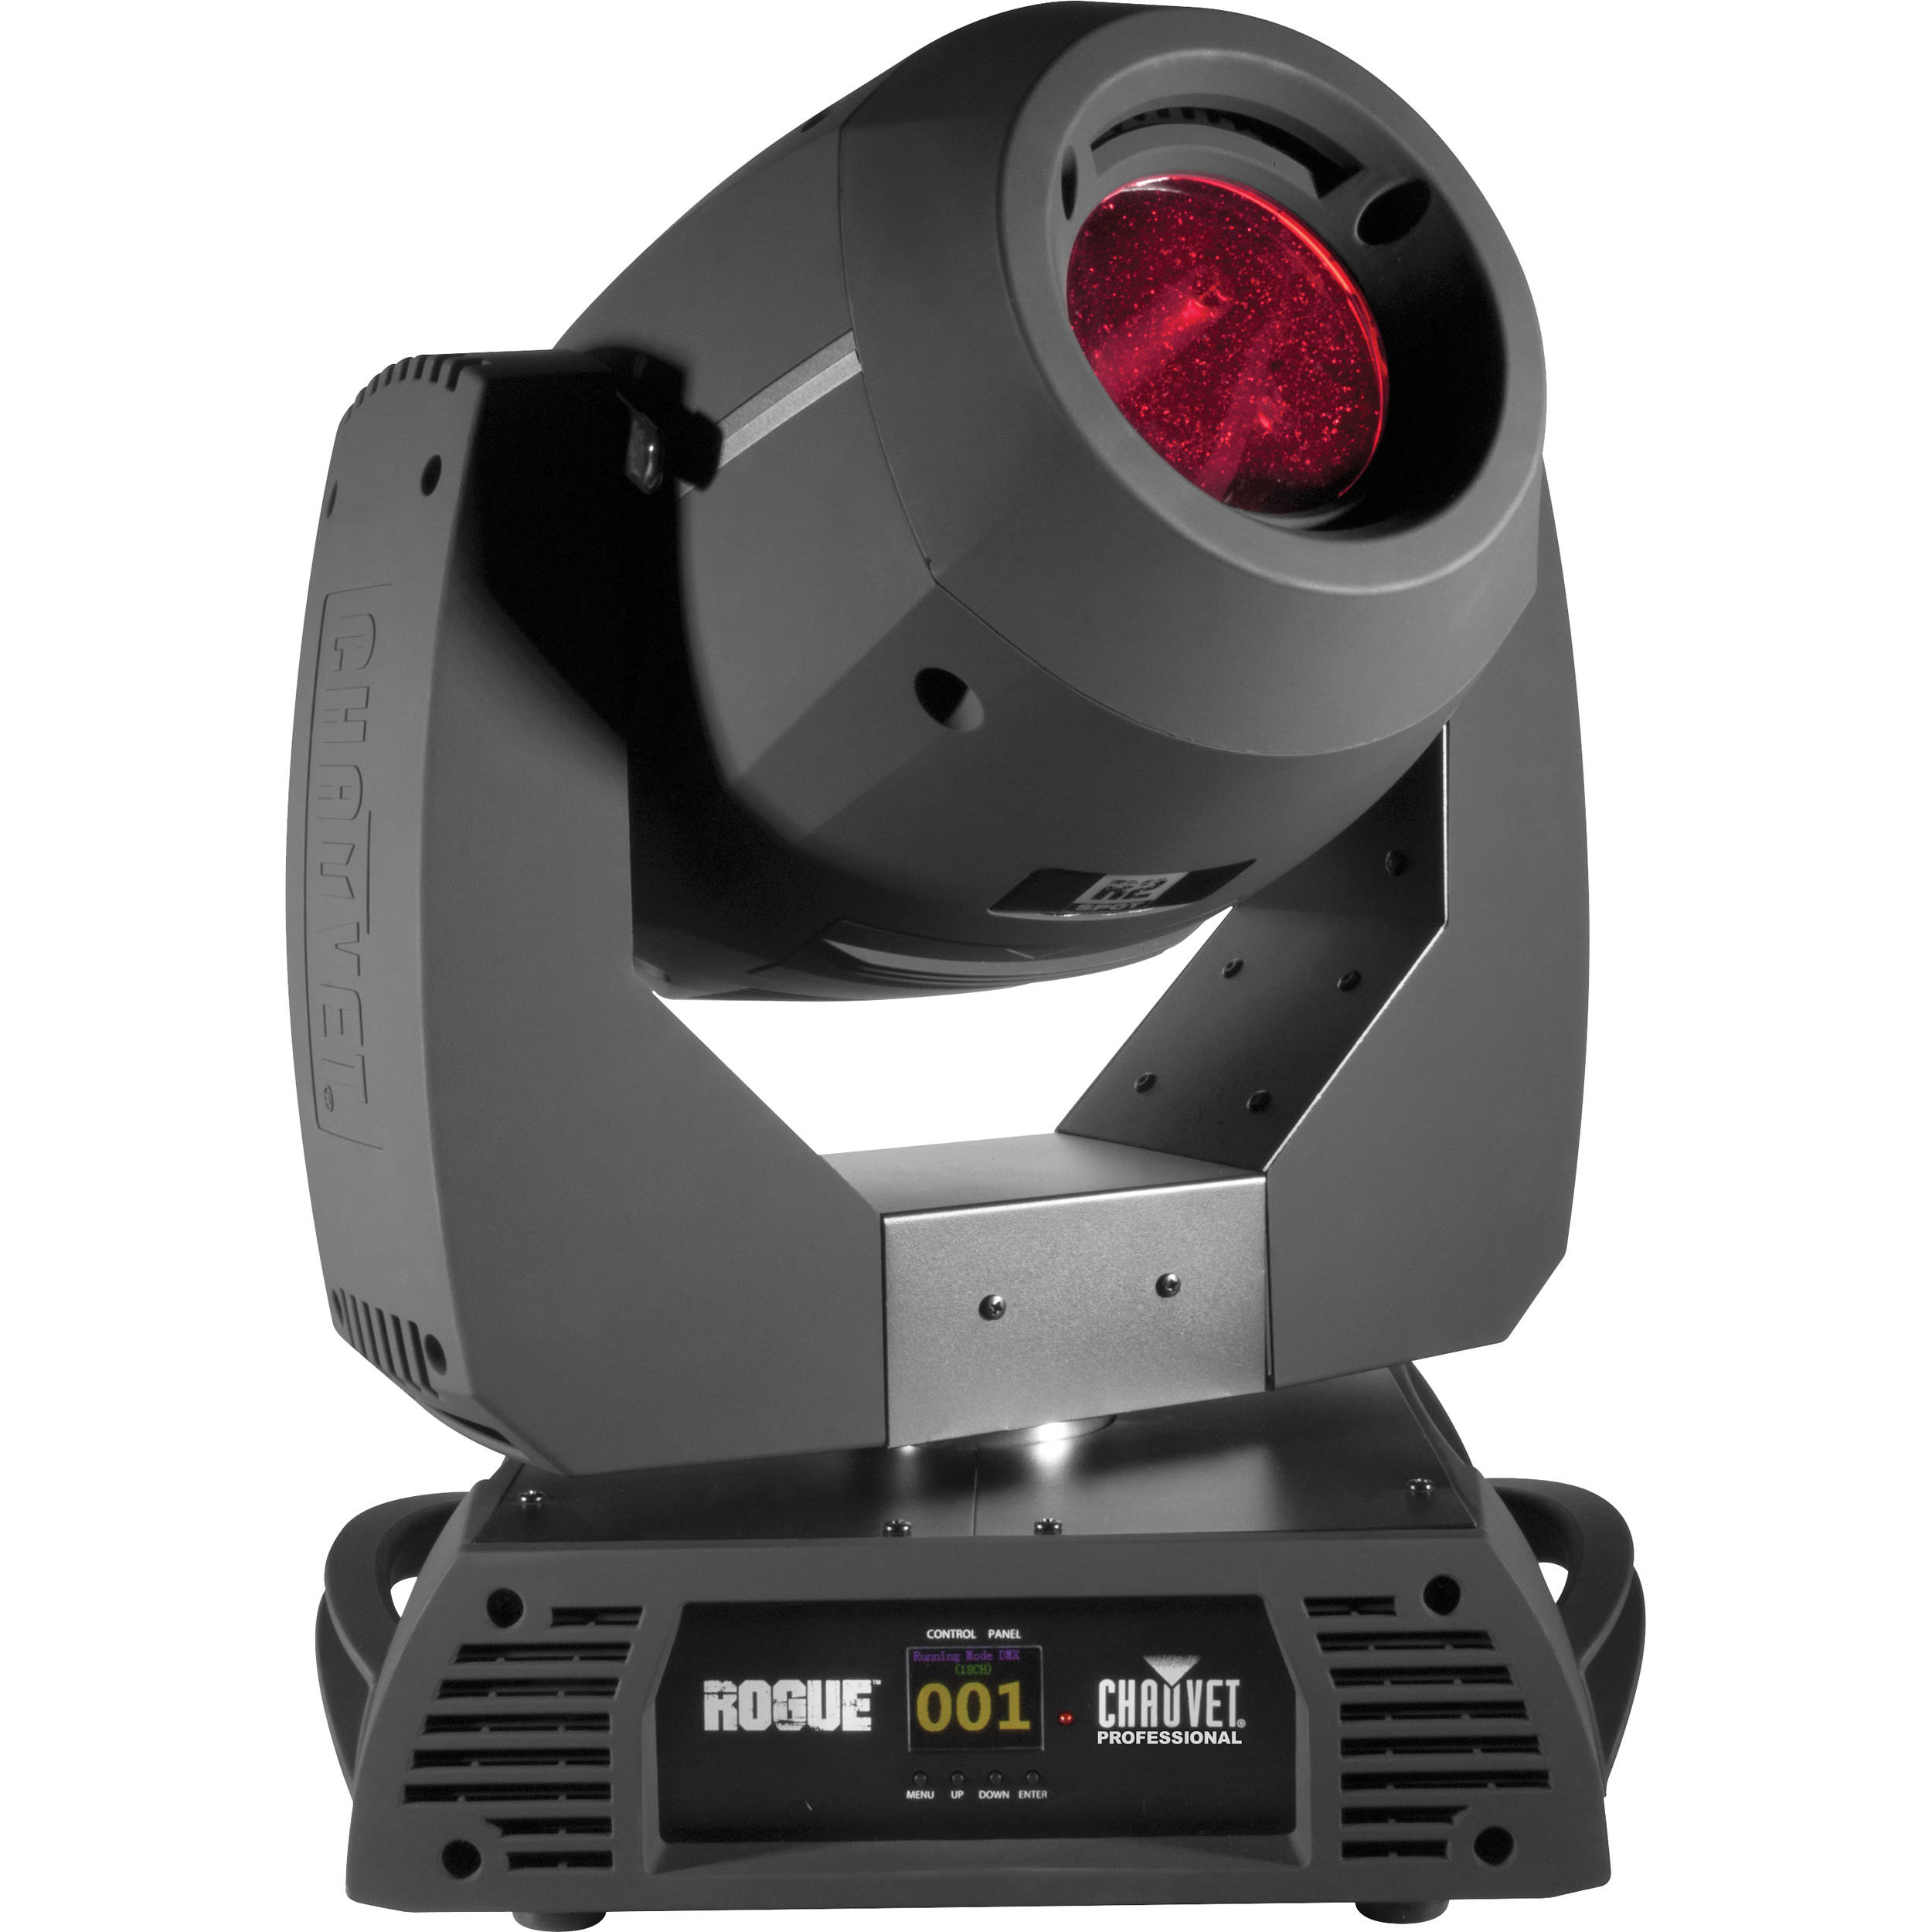 chauvet professional rogue r2 spot moving head led roguer2spot. Black Bedroom Furniture Sets. Home Design Ideas